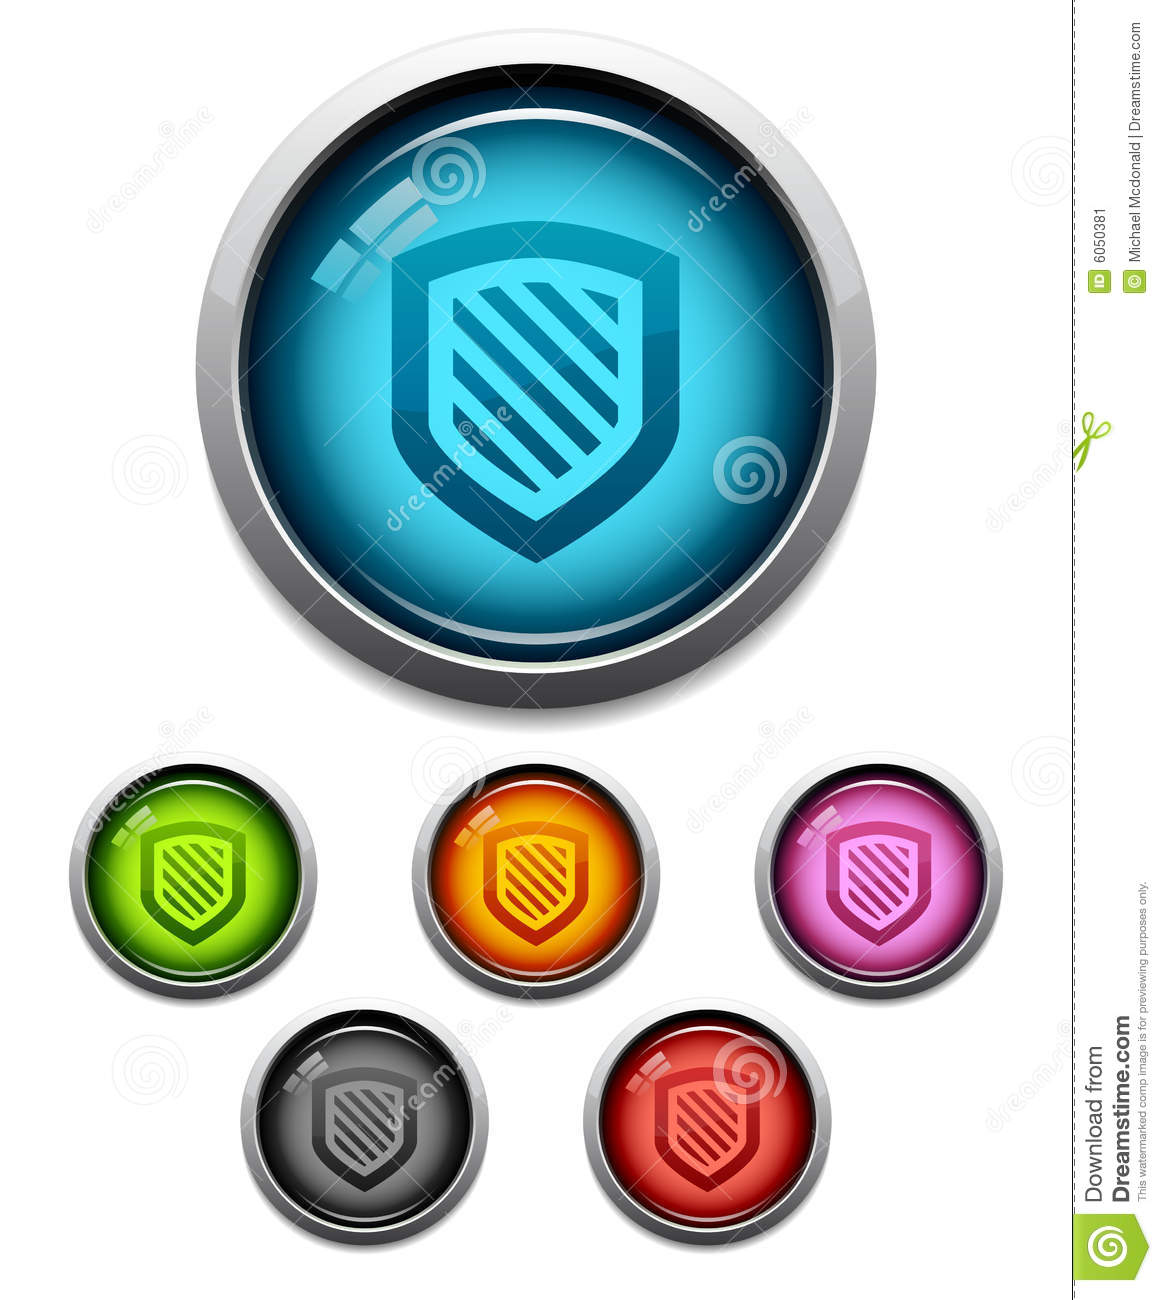 Shield button icon